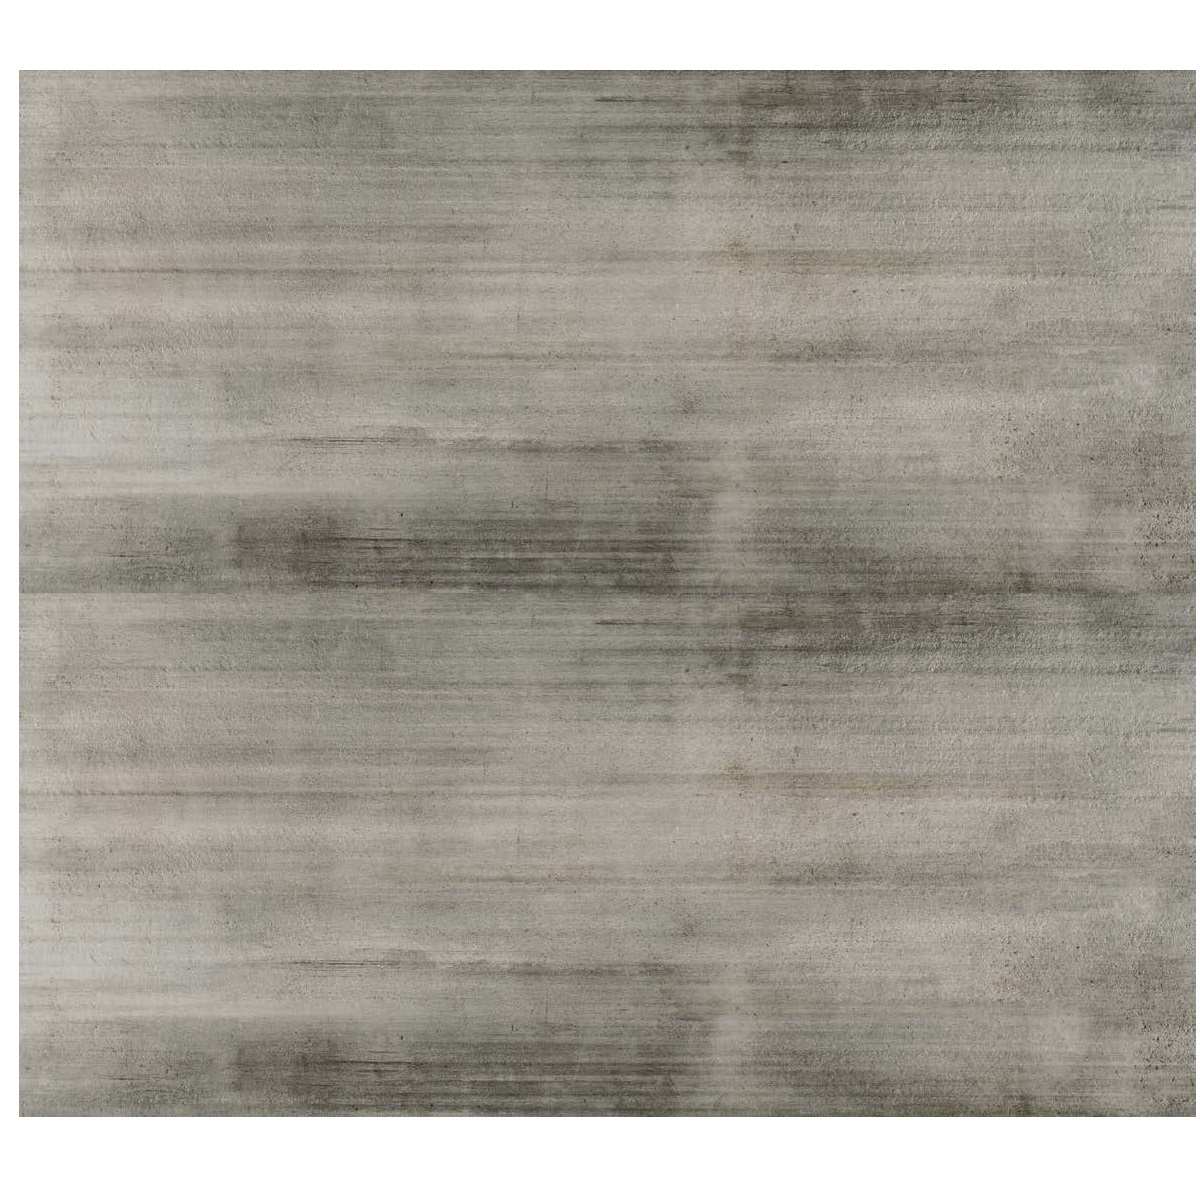 Gresie portelanata rectificata Diesel living Arizona Concrete Smooth 60x60cm 9mm Greige poza